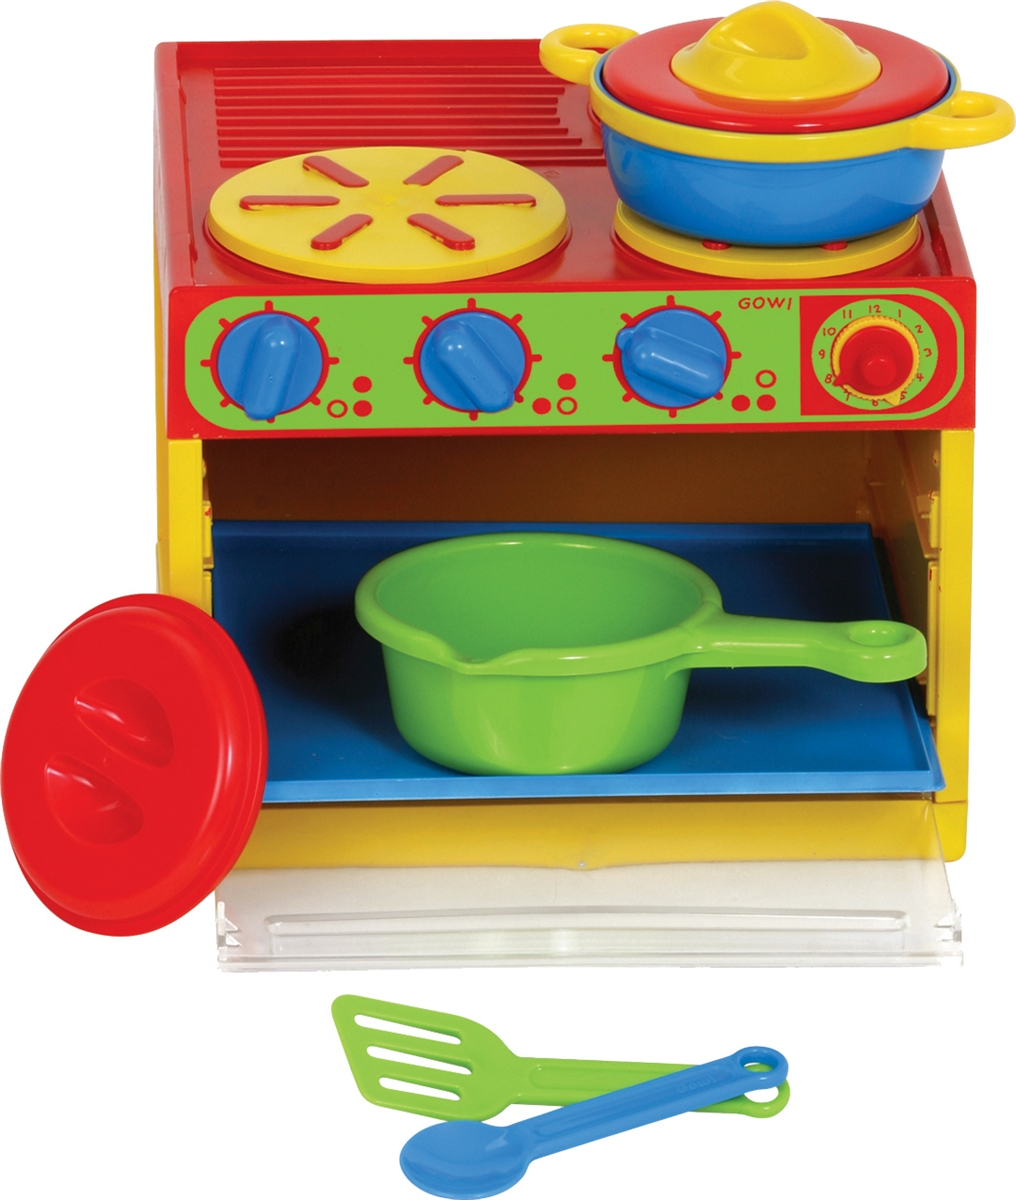 gowi toys 7 pc. kitchen set